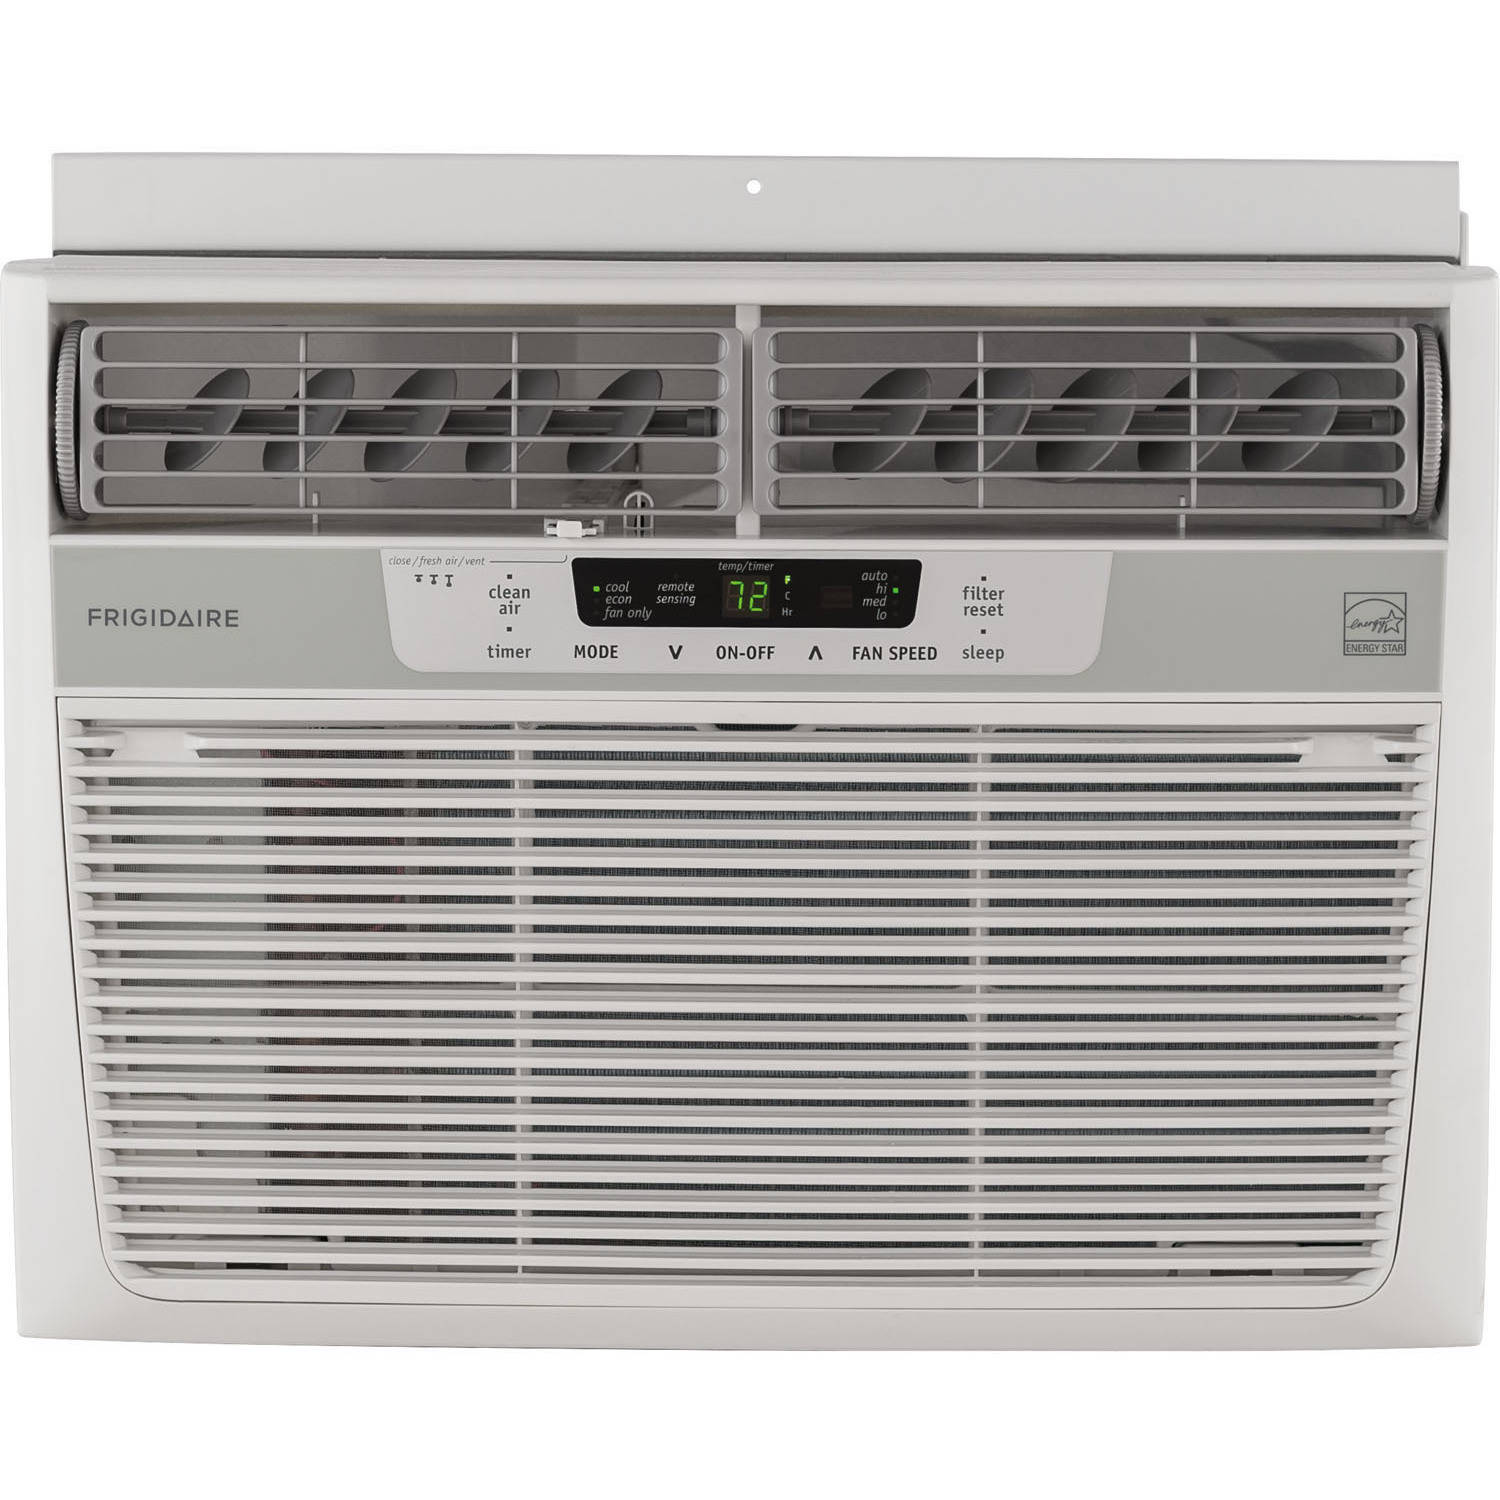 Frigidaire FFRE1033S1 10,000 BTU 115V Window-Mounted Compact Air Conditioner with Temperature Sensing Remote Control